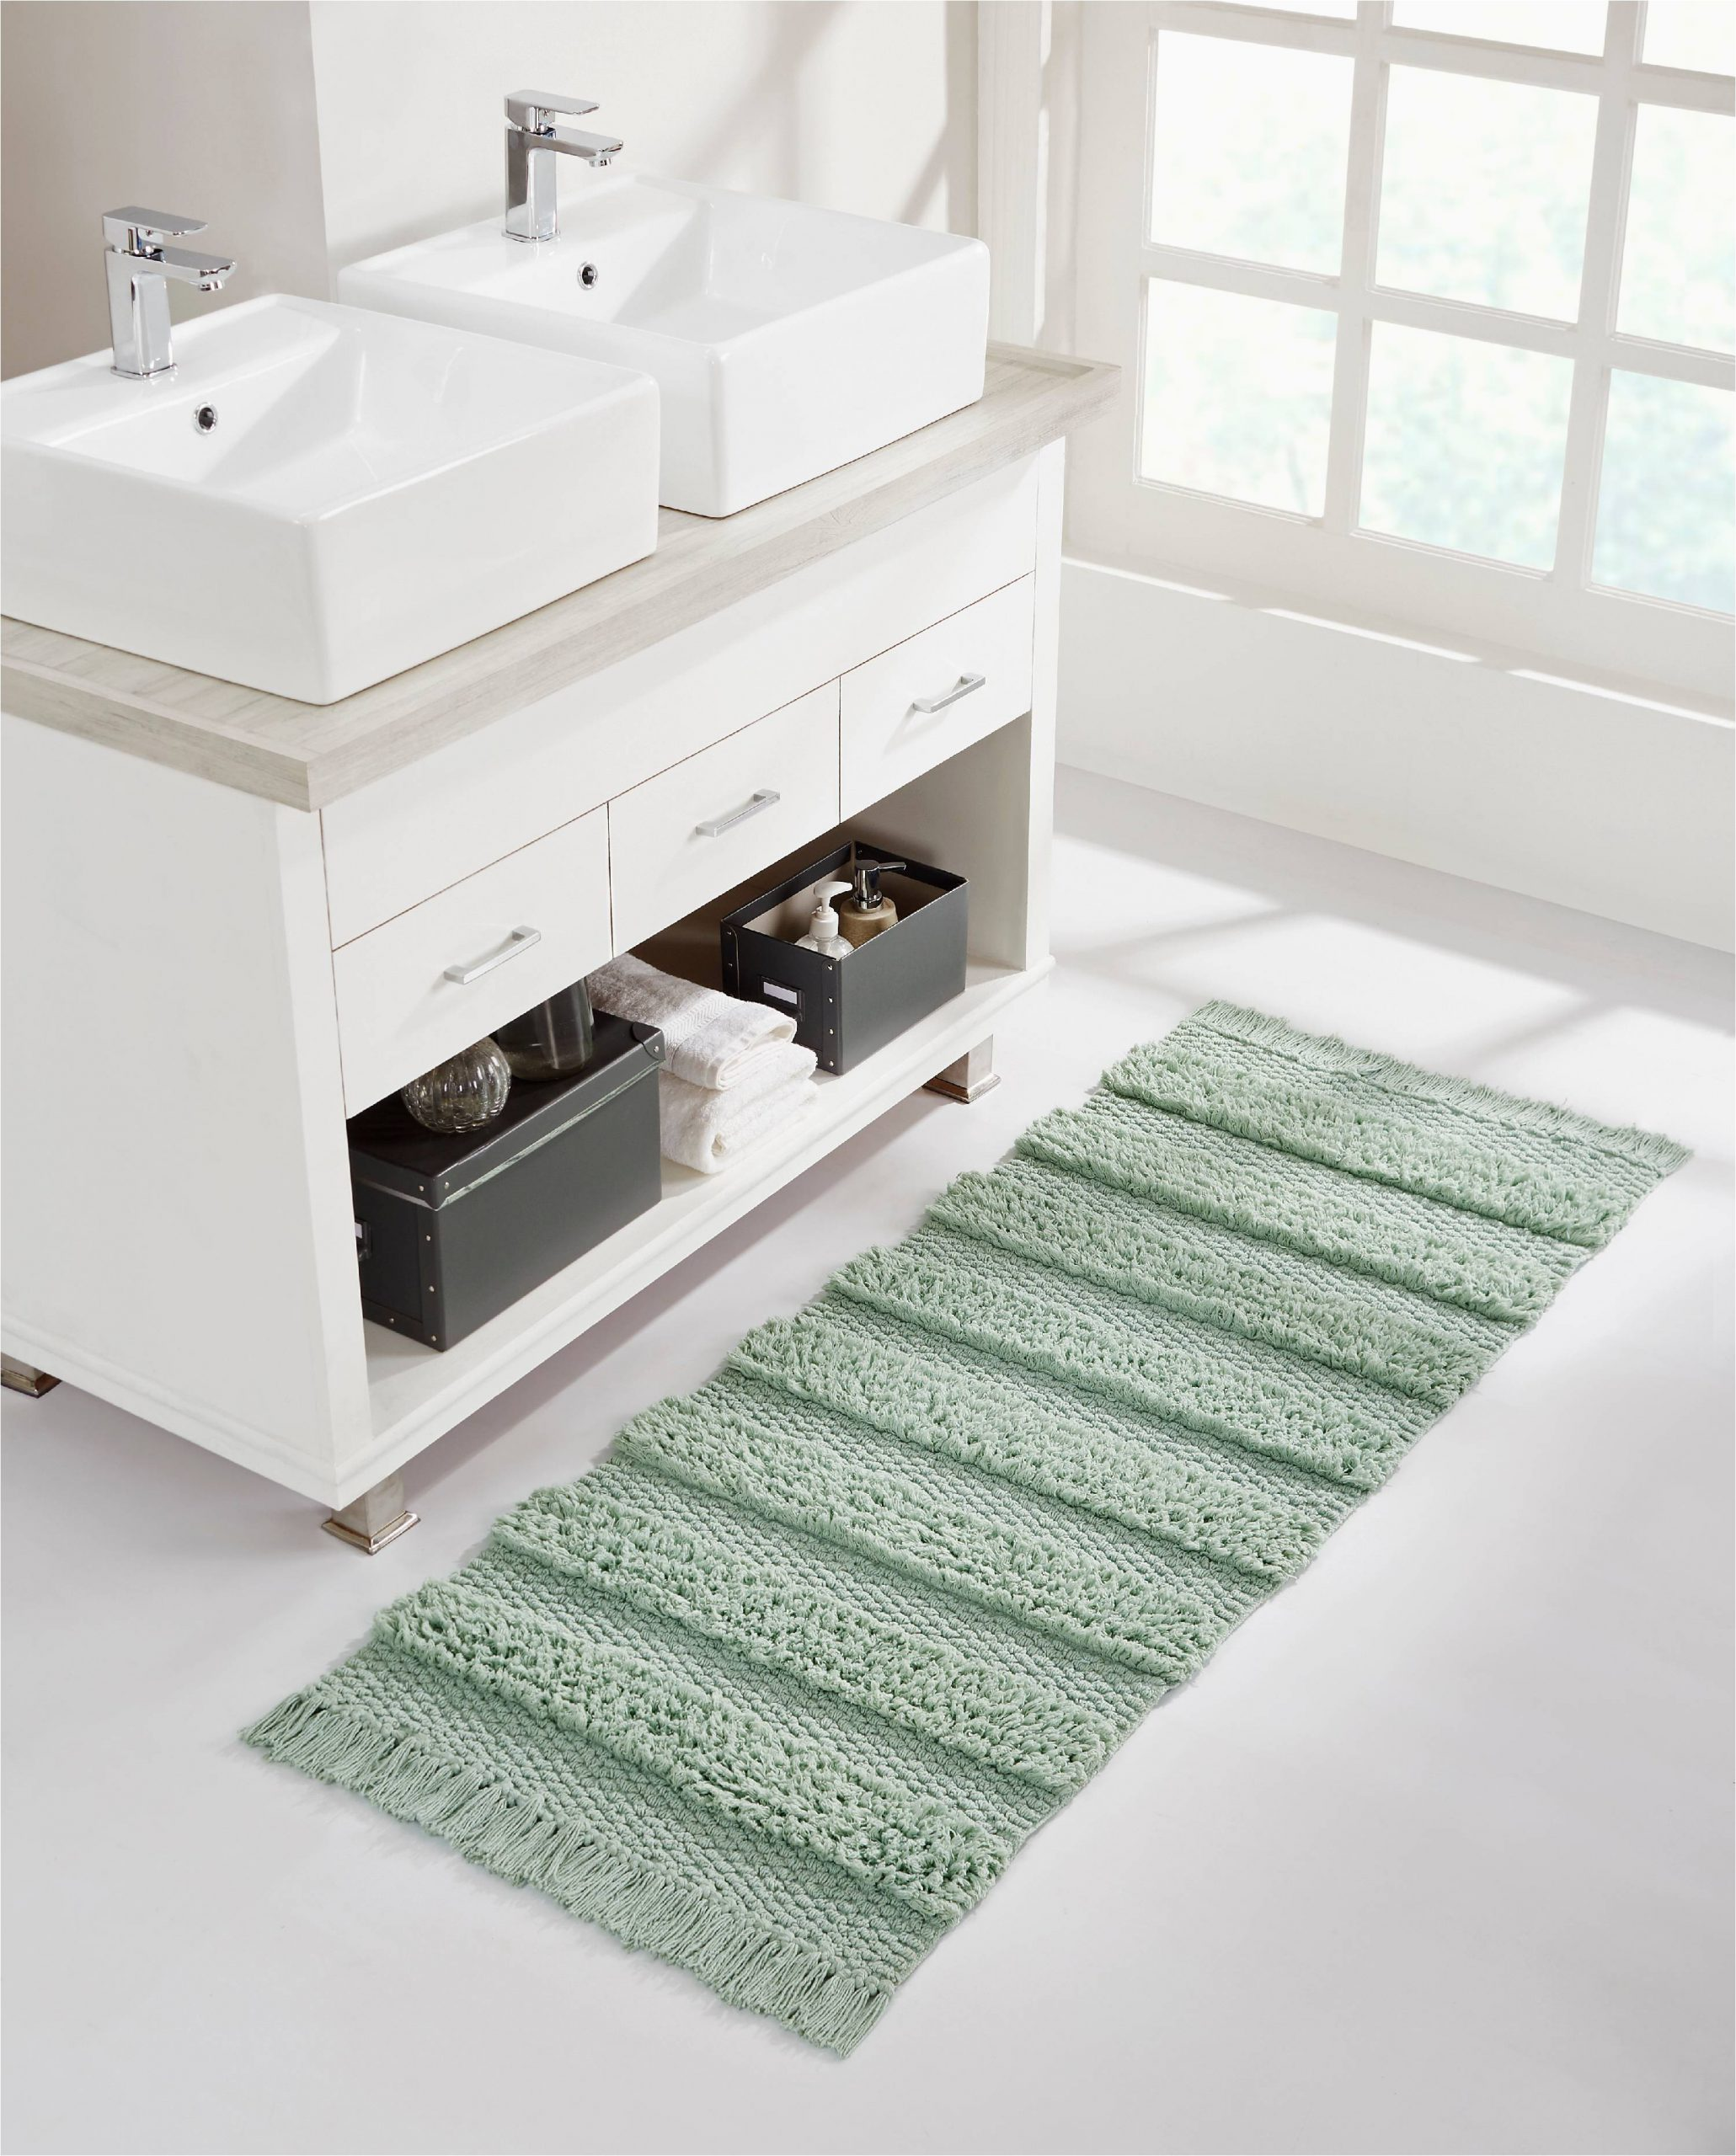 Bath Rug Runner 20 X 60 Vcny Home Savannah Fringe Stripe Bath Rug Runner 24 X 60 Sage